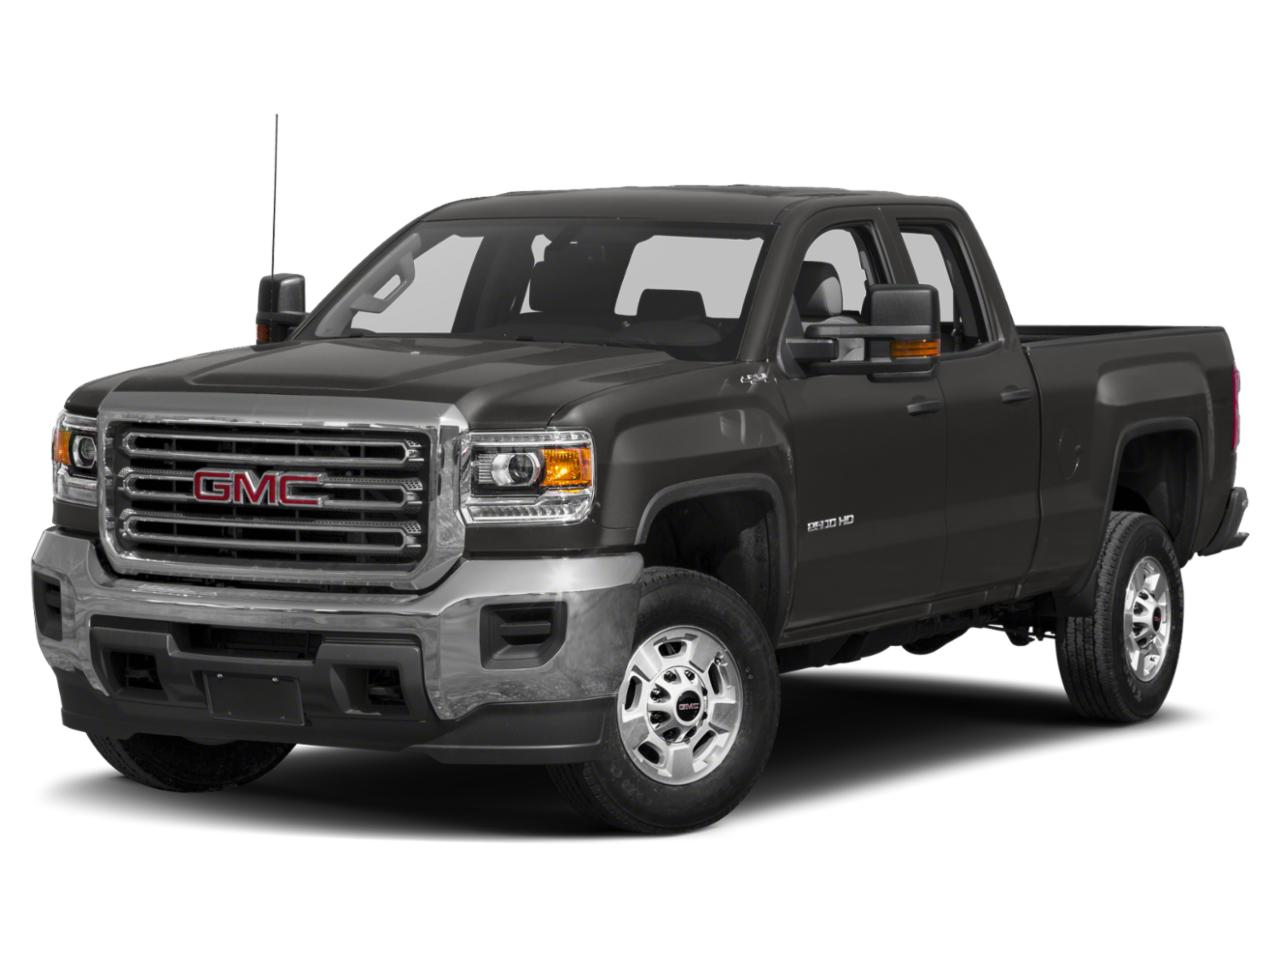 2019 GMC Sierra 2500HD Vehicle Photo in Nashua, NH 03060